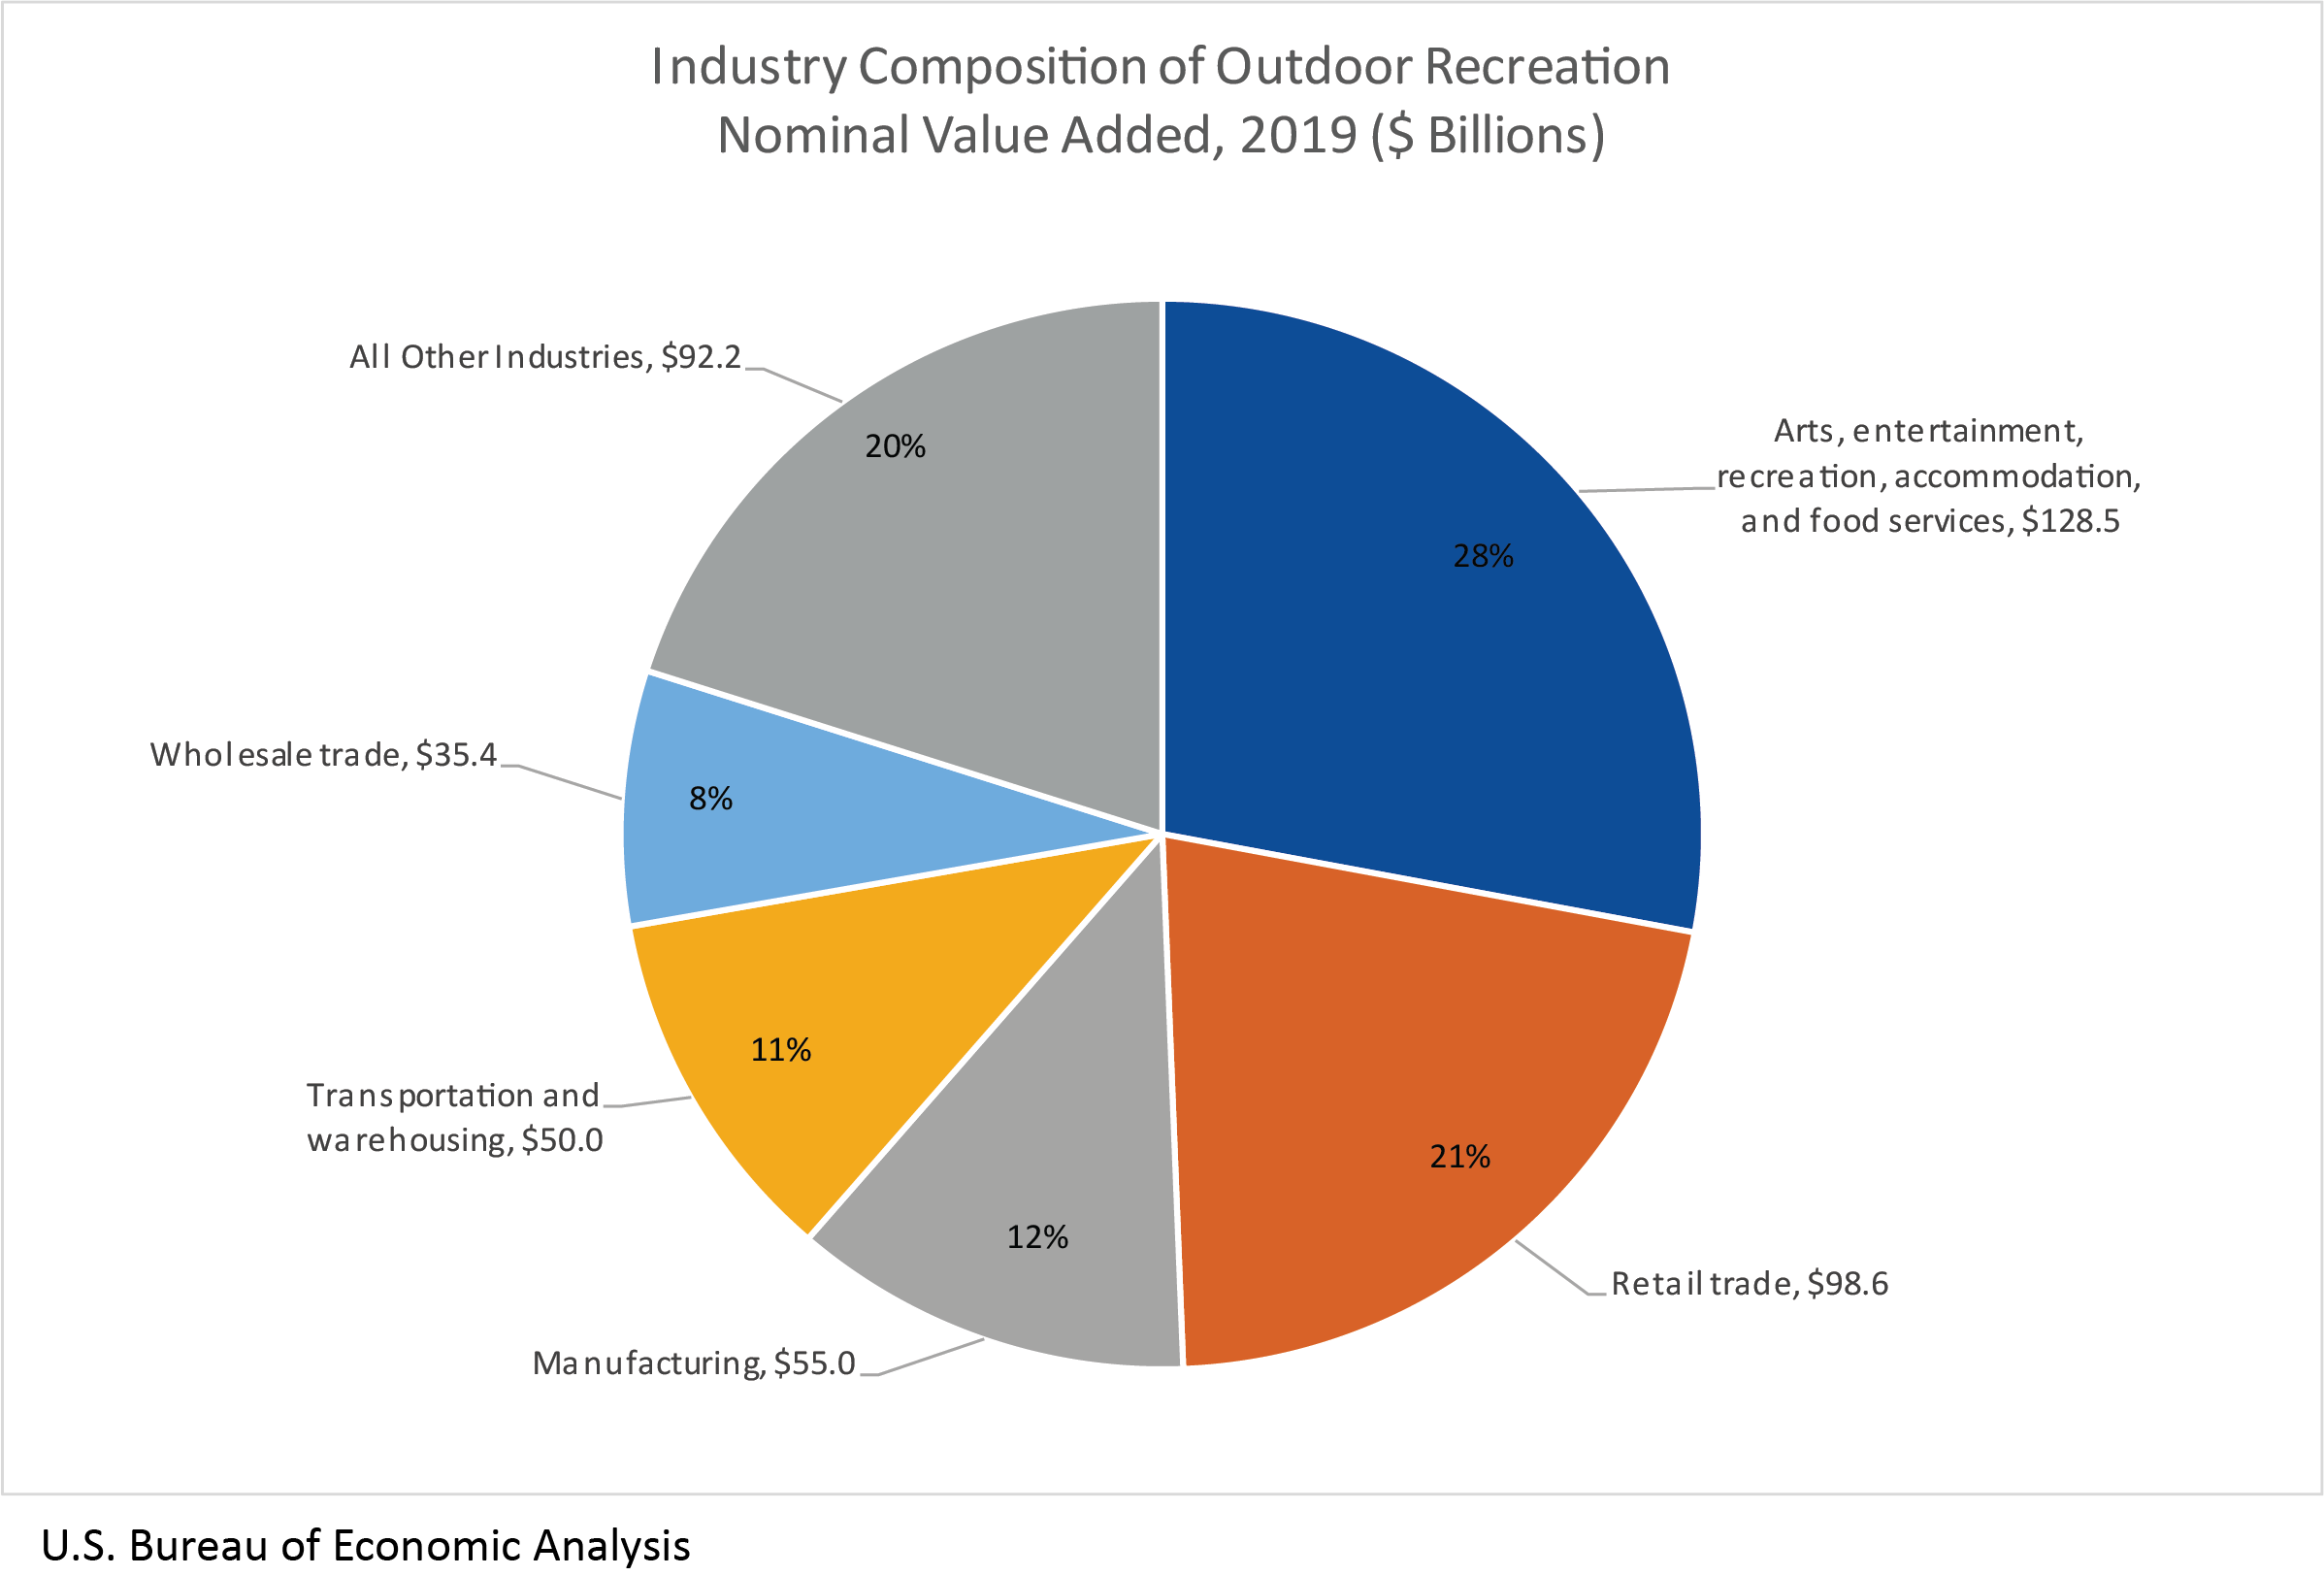 Industry Composition of Outdoor Recreation Nominal Value Added, 2019 ($Billions)